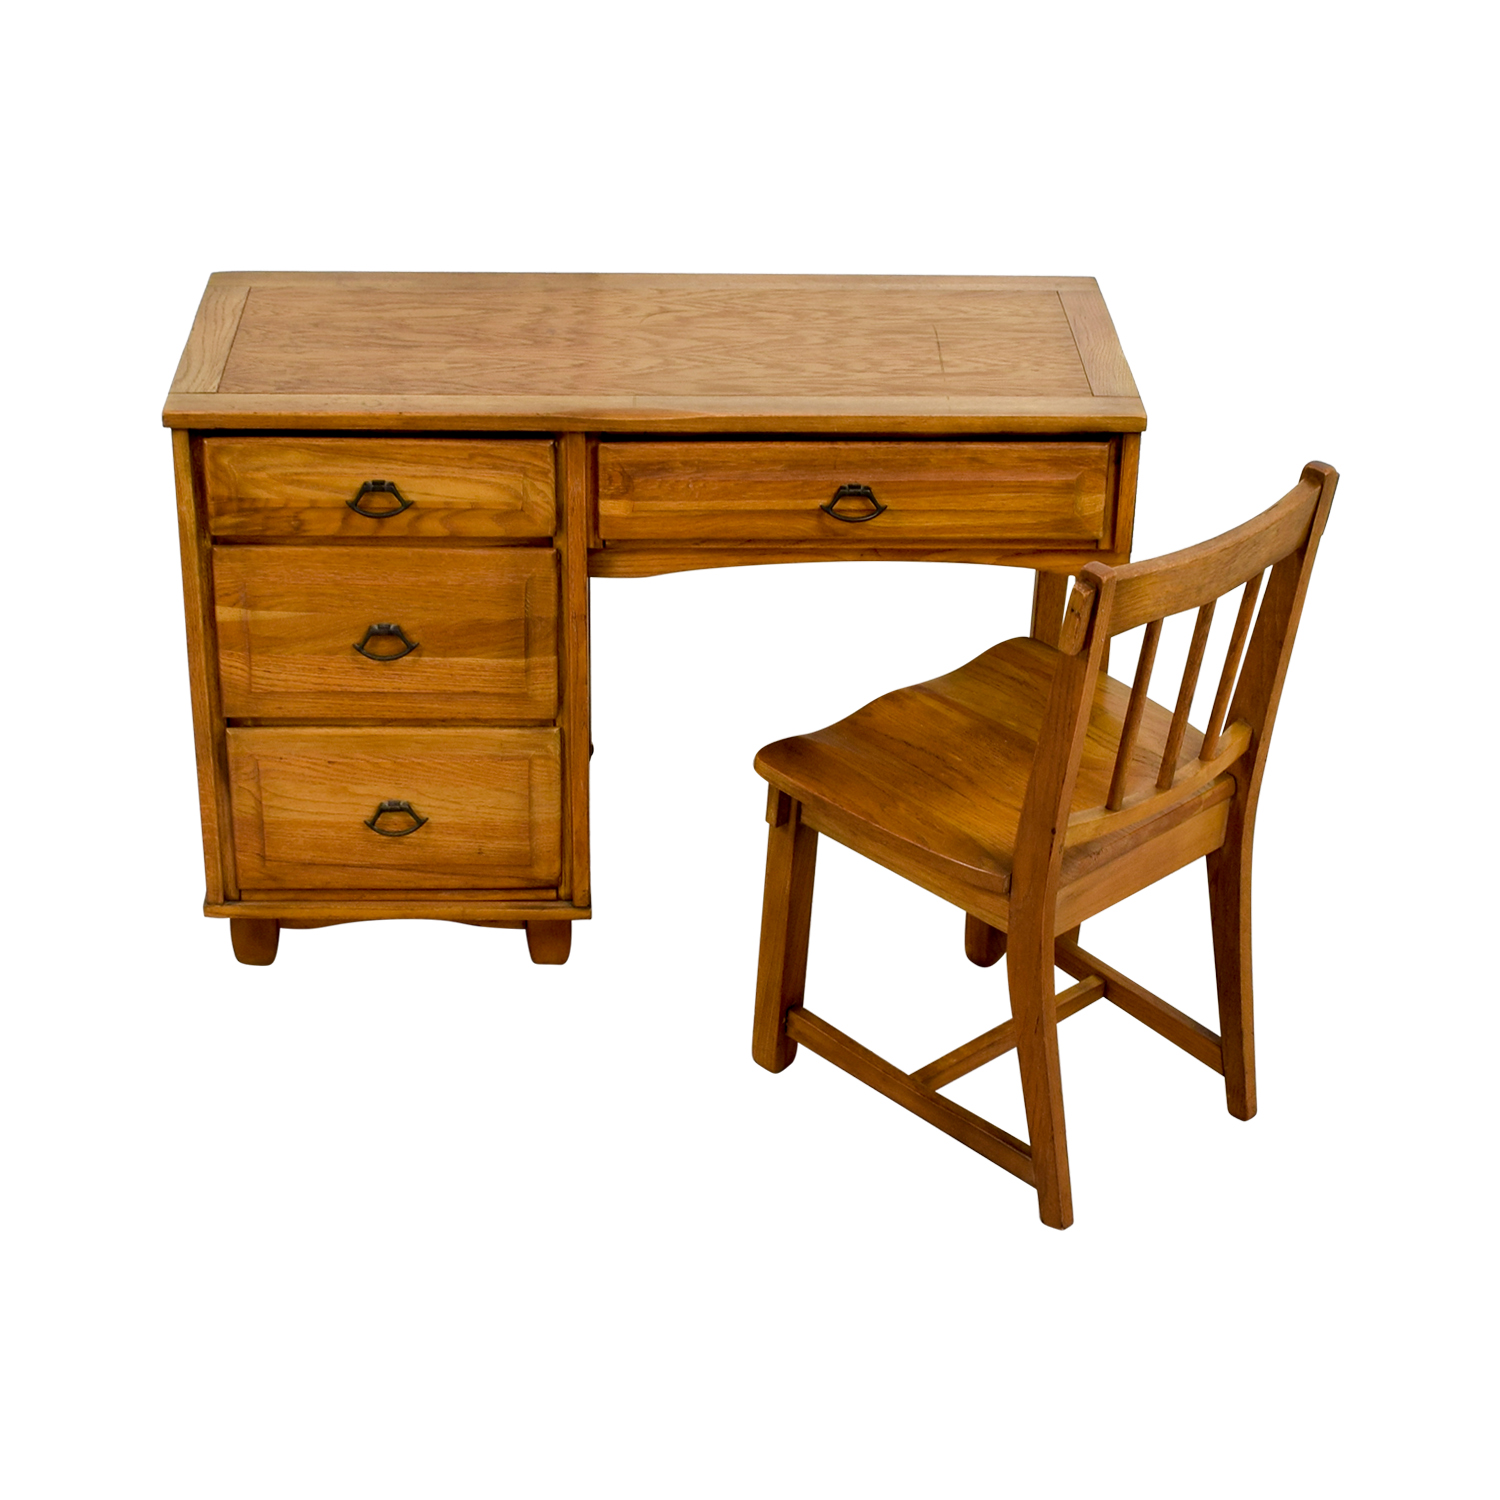 Vintage Oak Desk with Chair / Tables